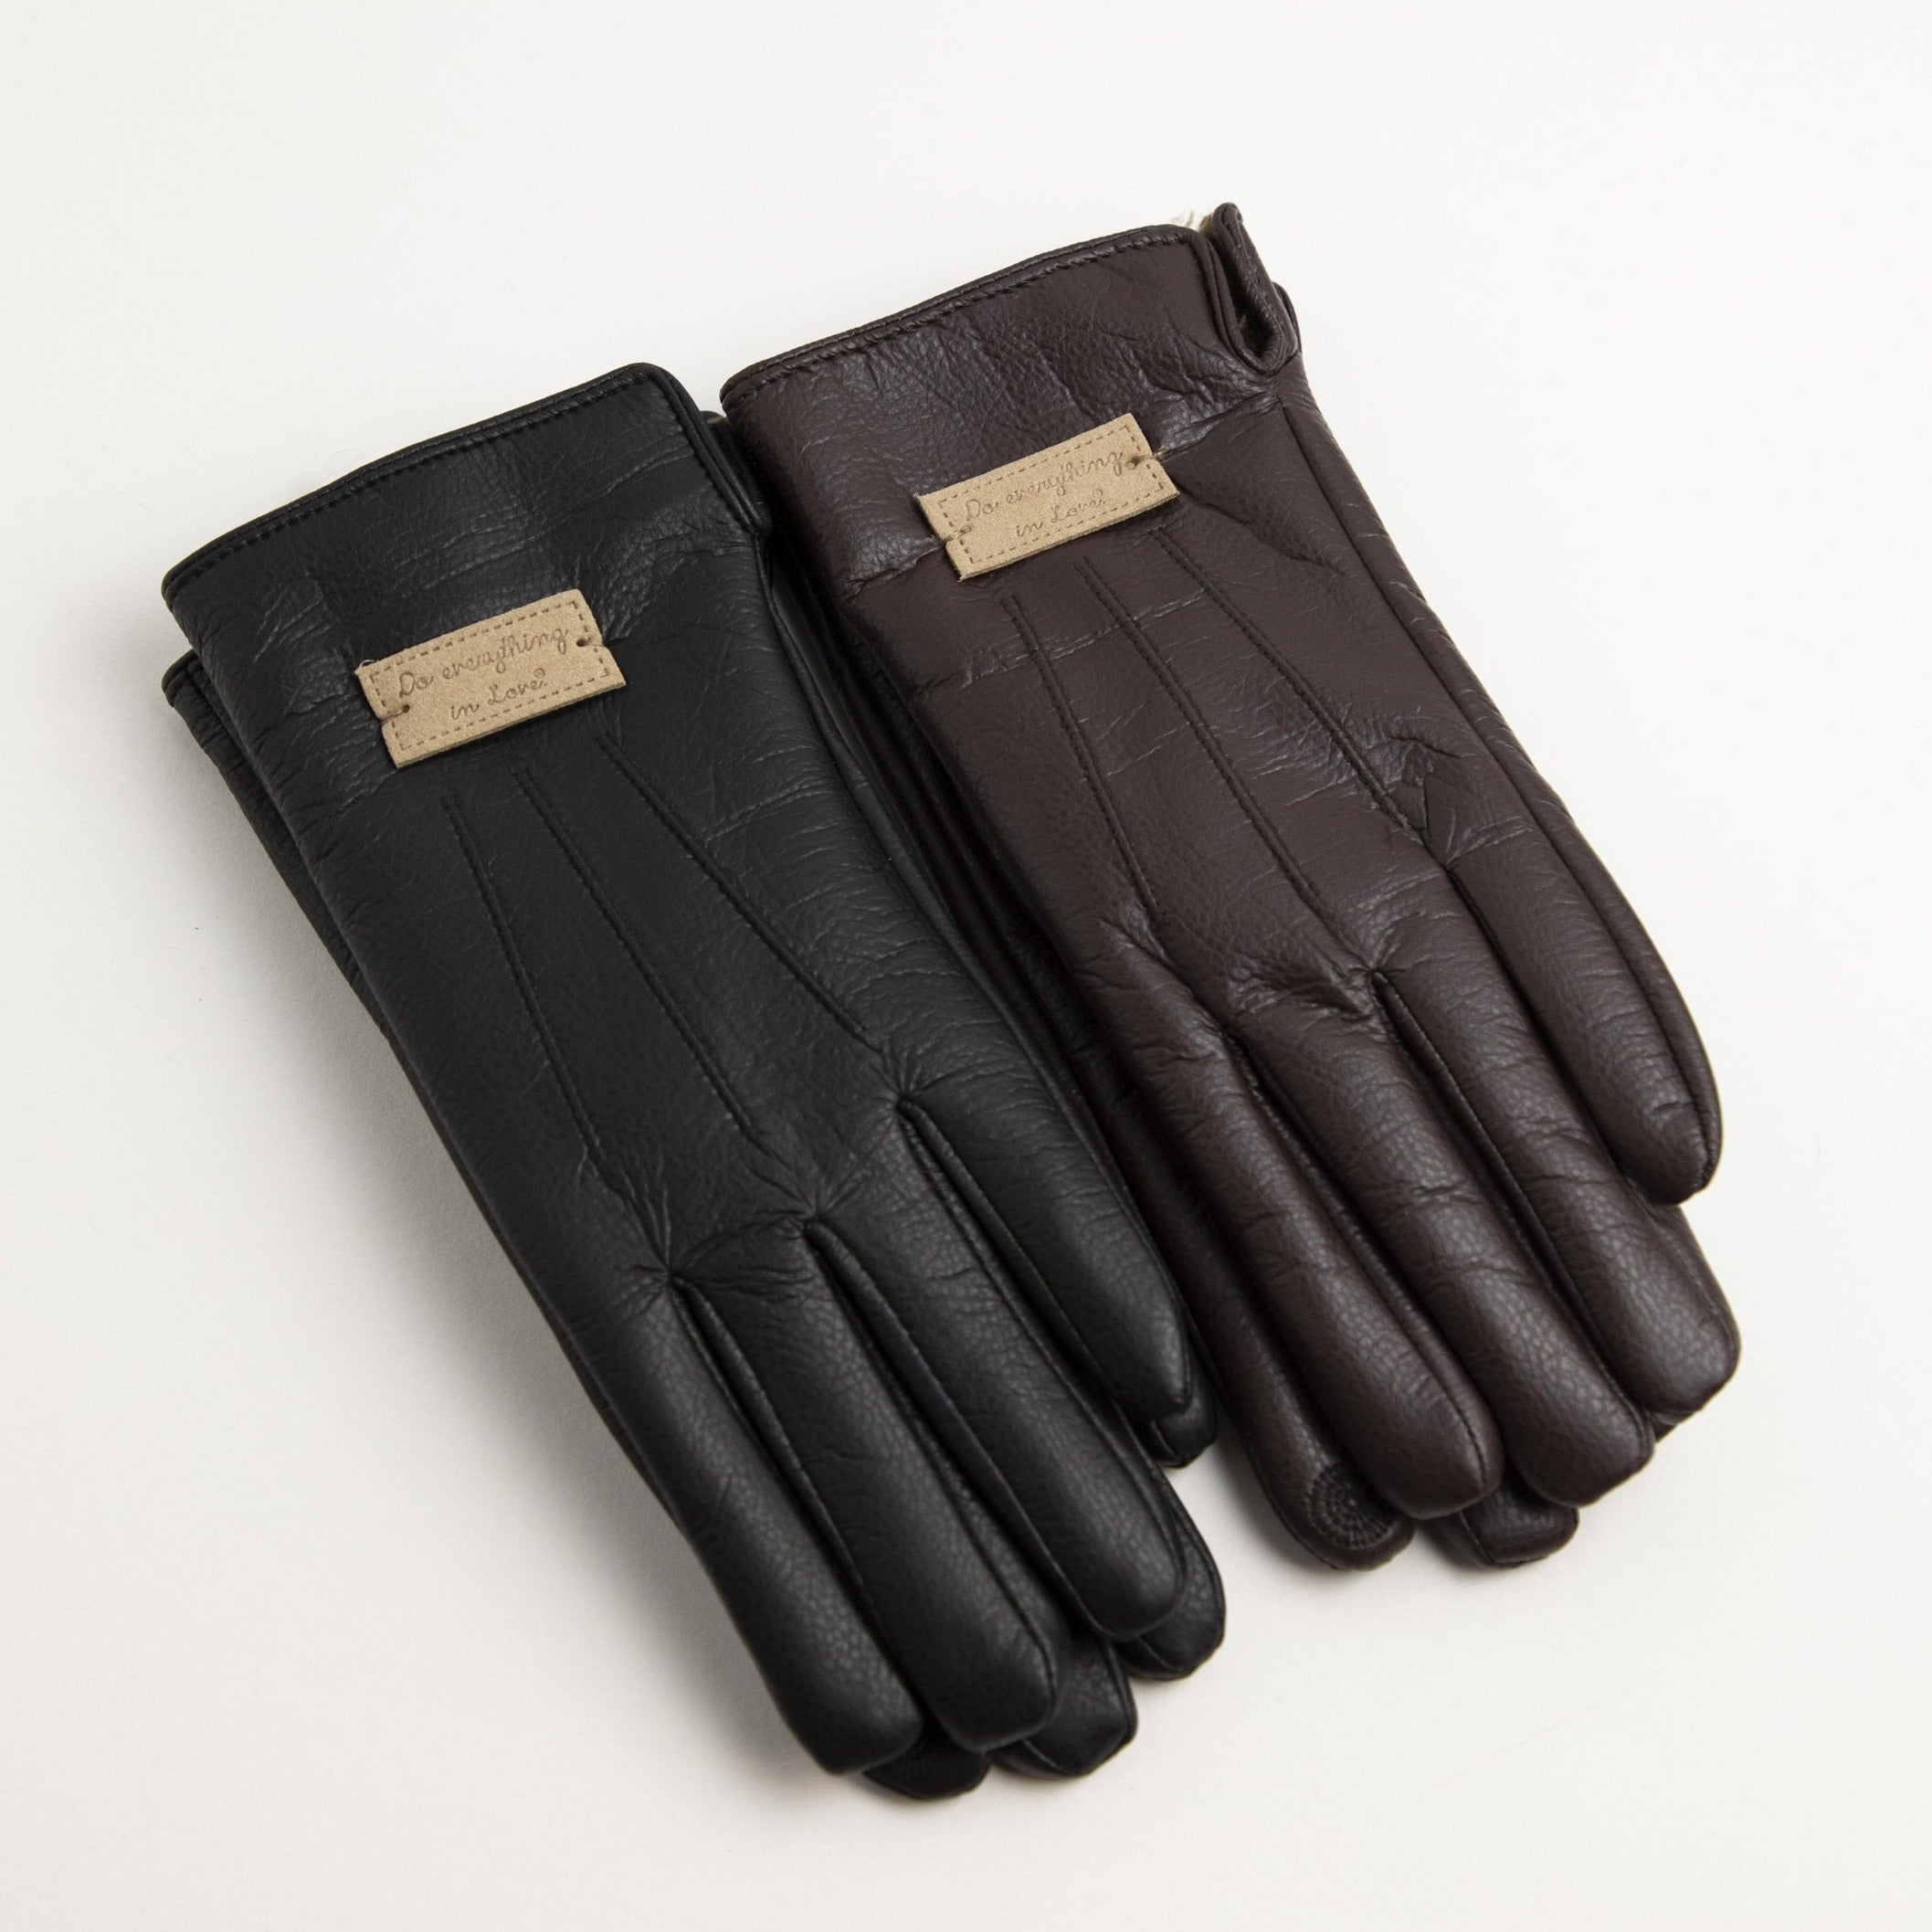 Touch Screen Fuzzy Lined Leather Gloves-Picnic-sf